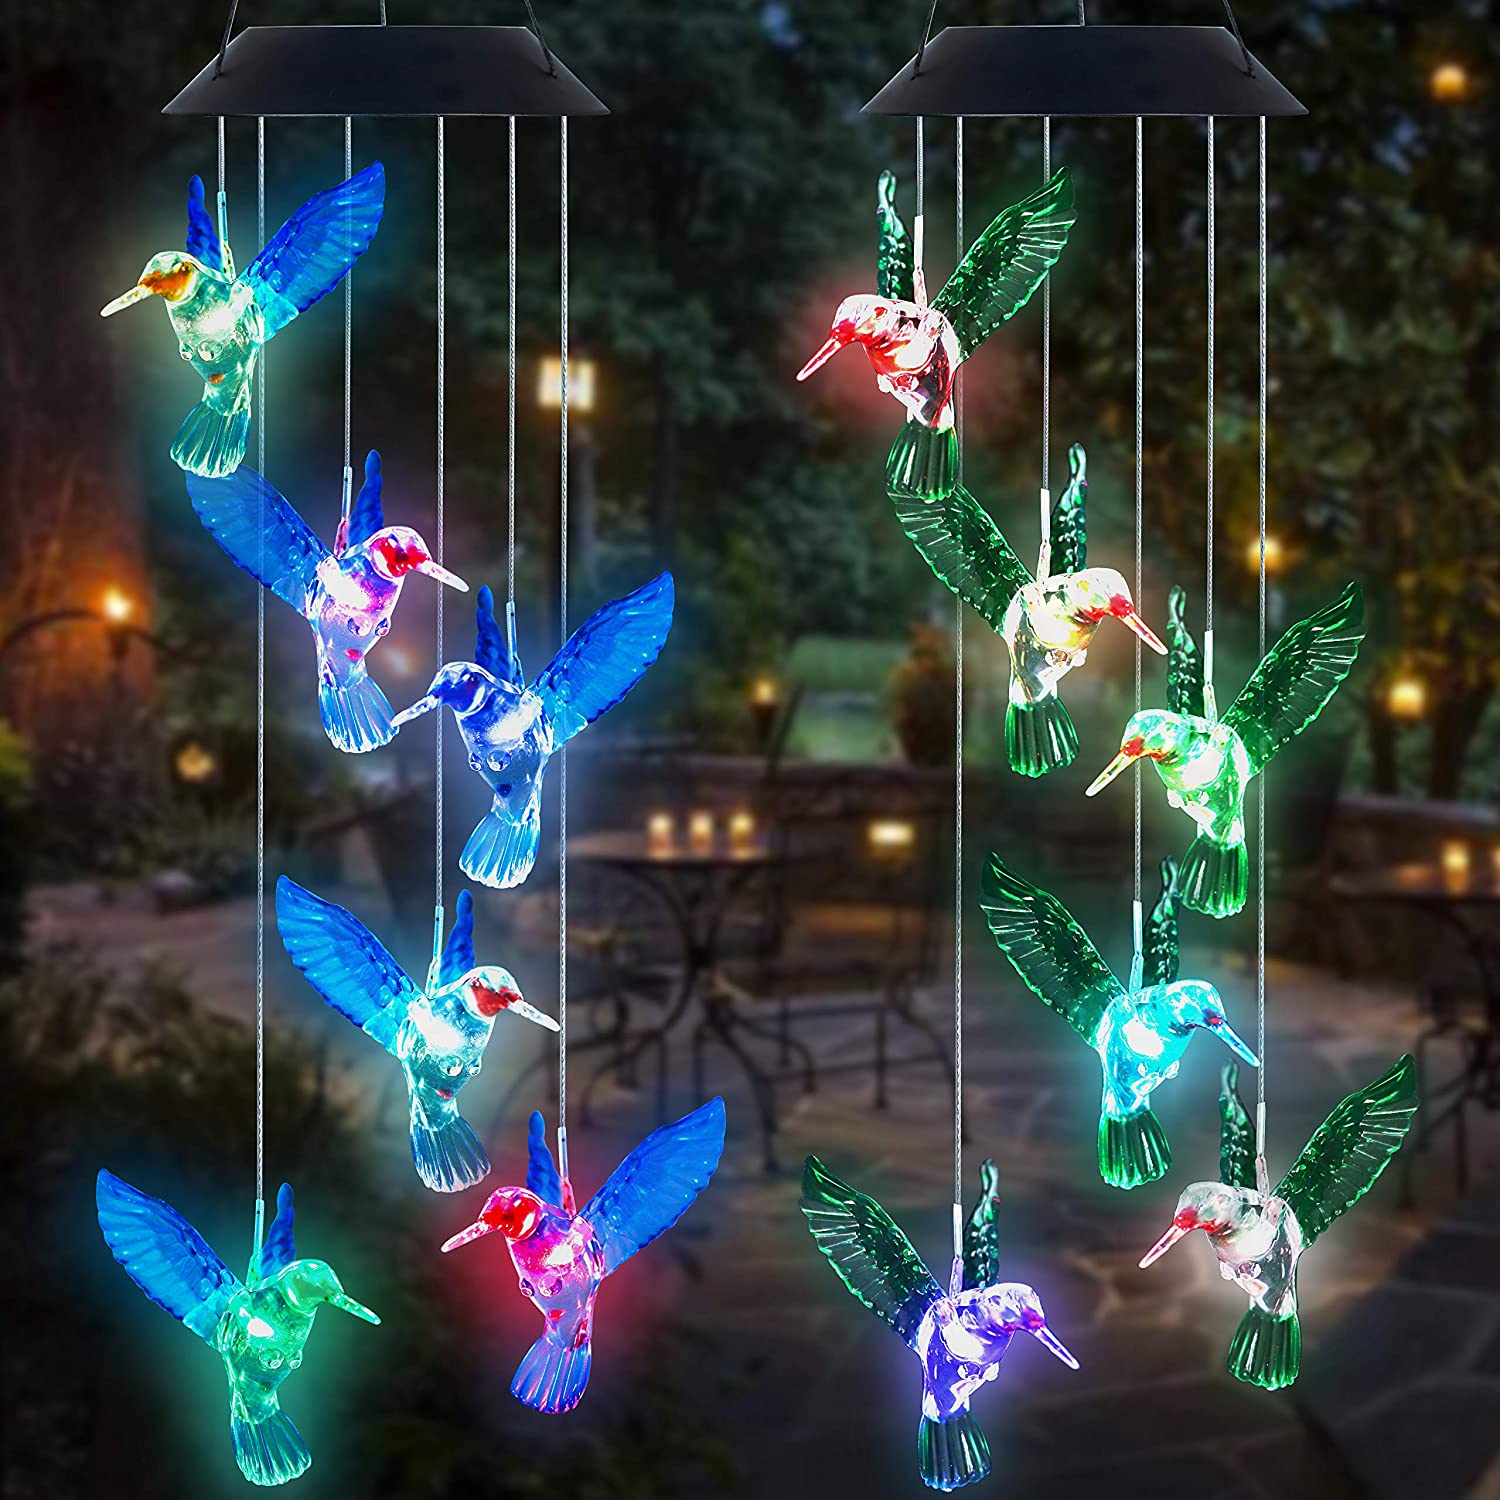 YOUYUAN 2 Pack Hummingbird Wind Chimes Blue and Green Color Solar Powered LED Automatic Color Changing Mobile Wind Chimes Outdoor Hanging Patio Light for Home, Porch, Deck, Garden Party Decoration